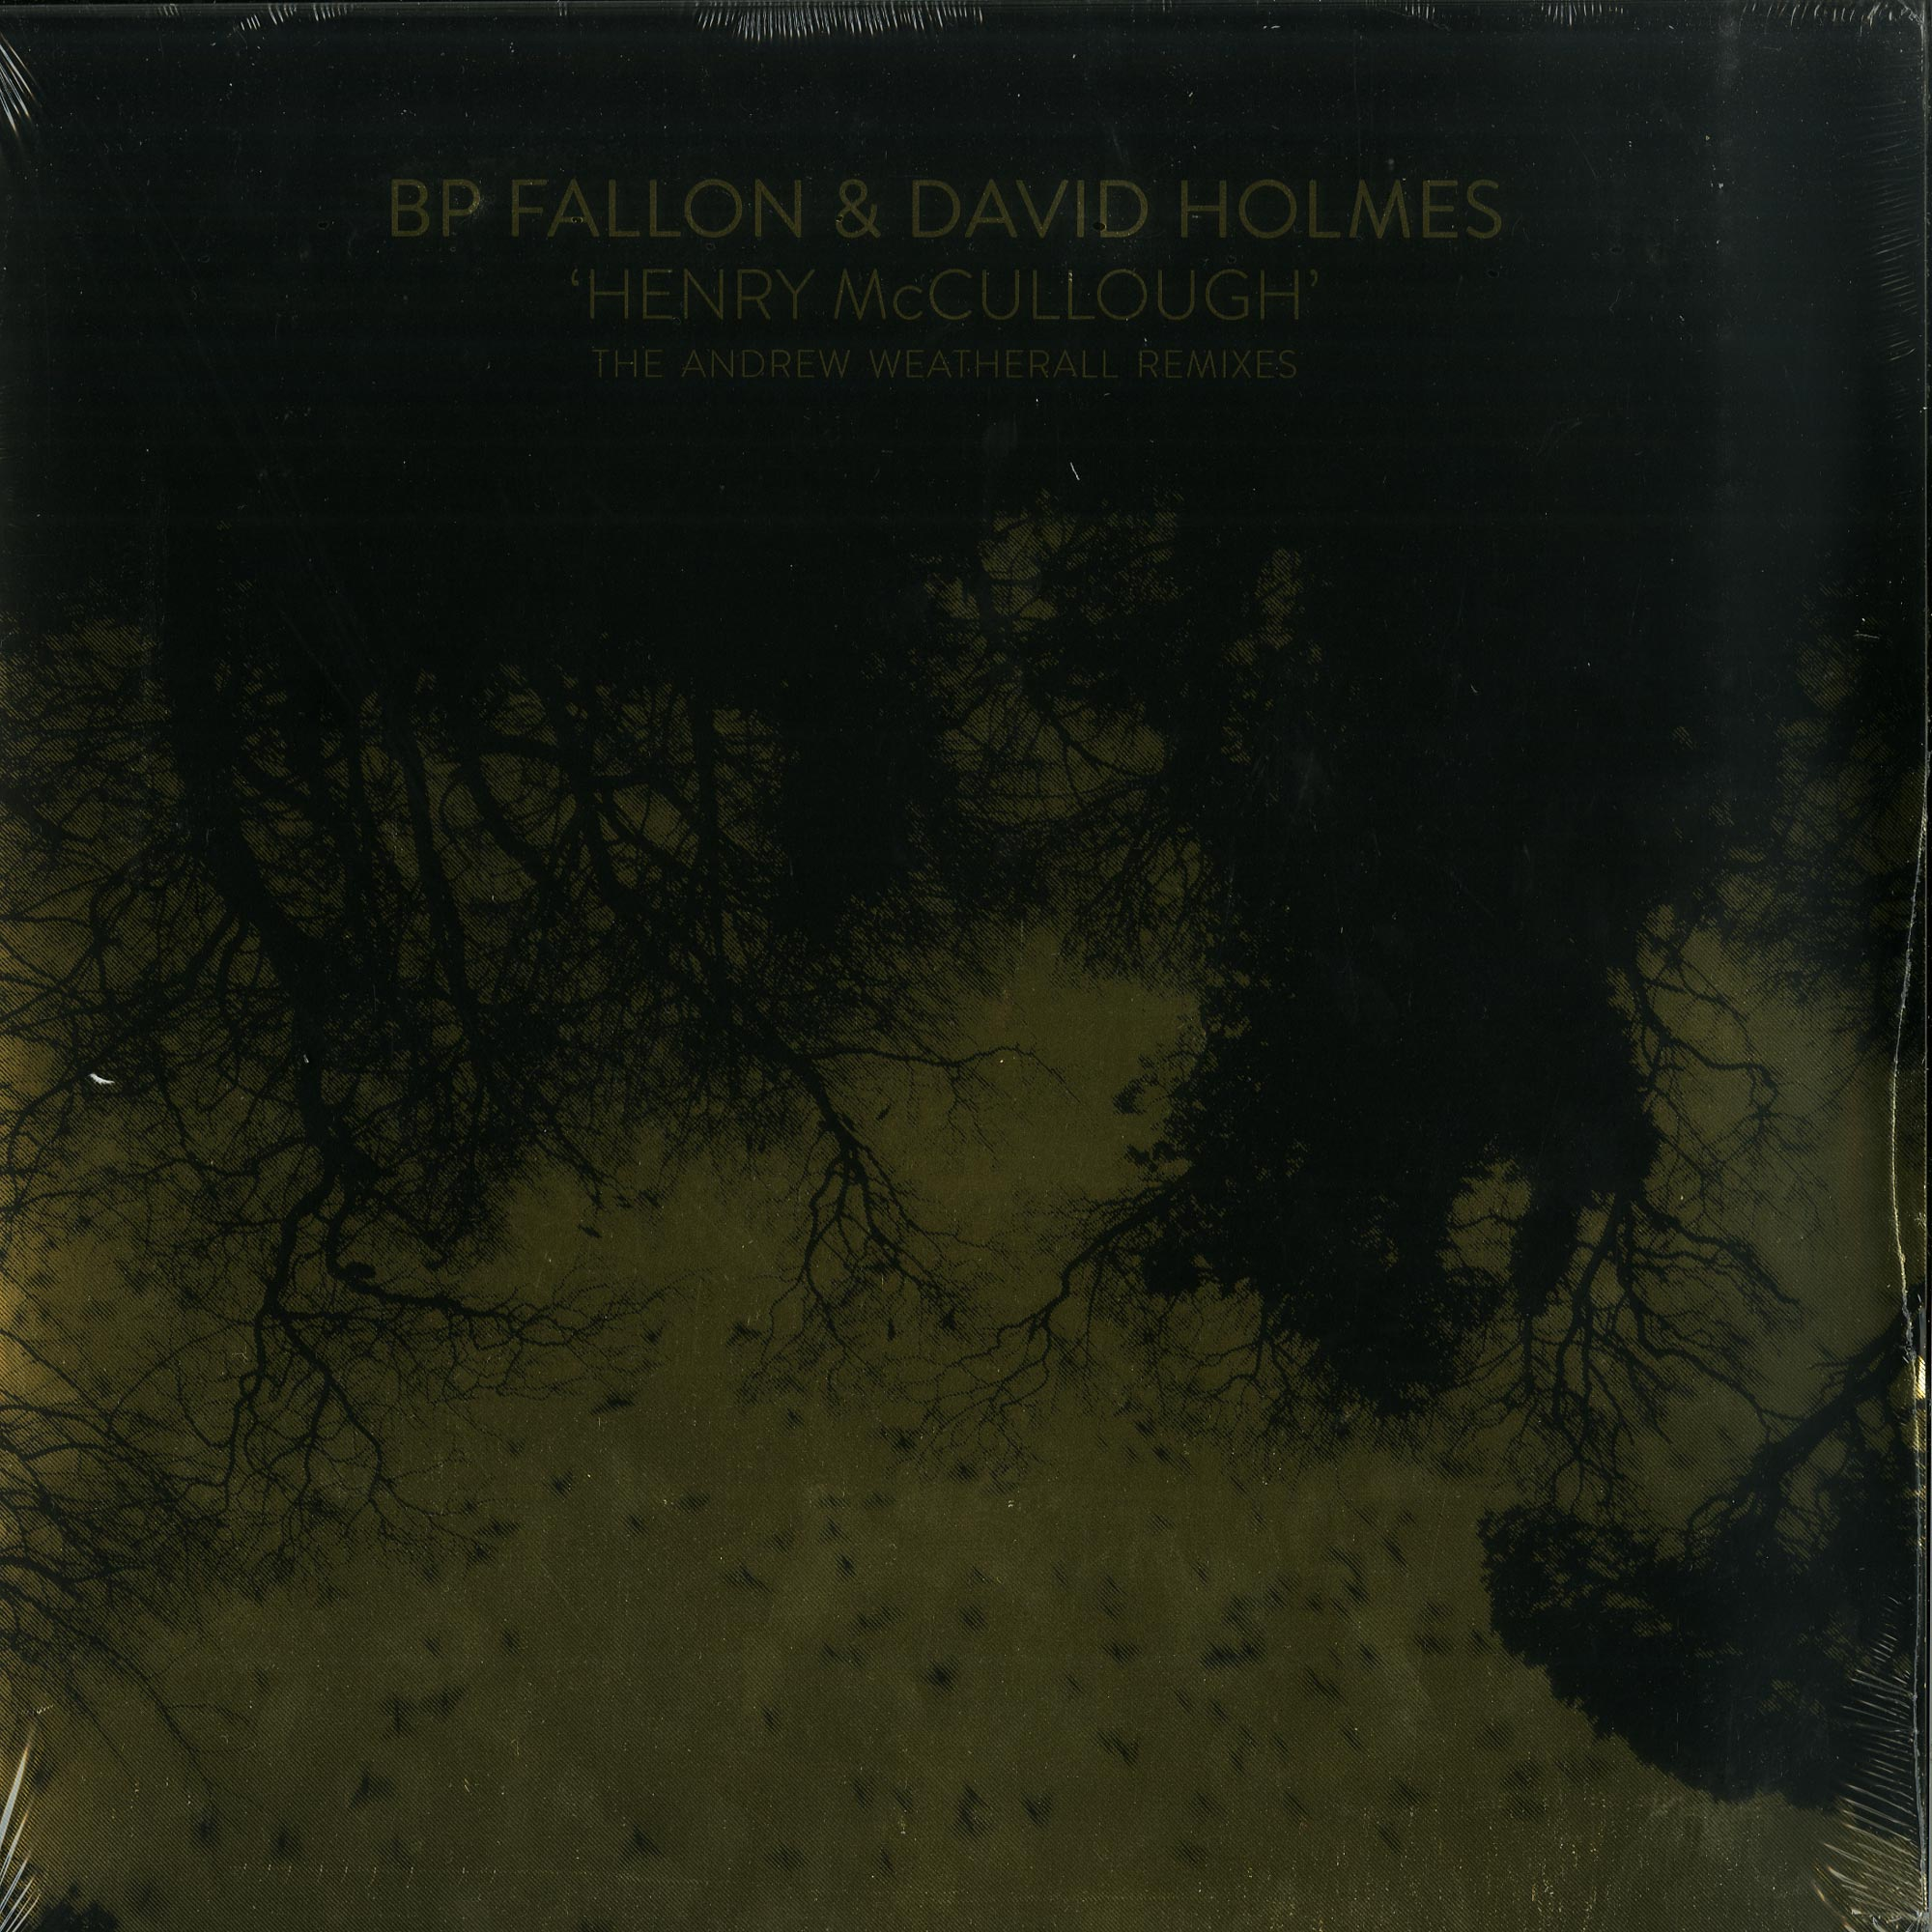 BP Fallon & David Holmes - HENRY MCCULLOUGH